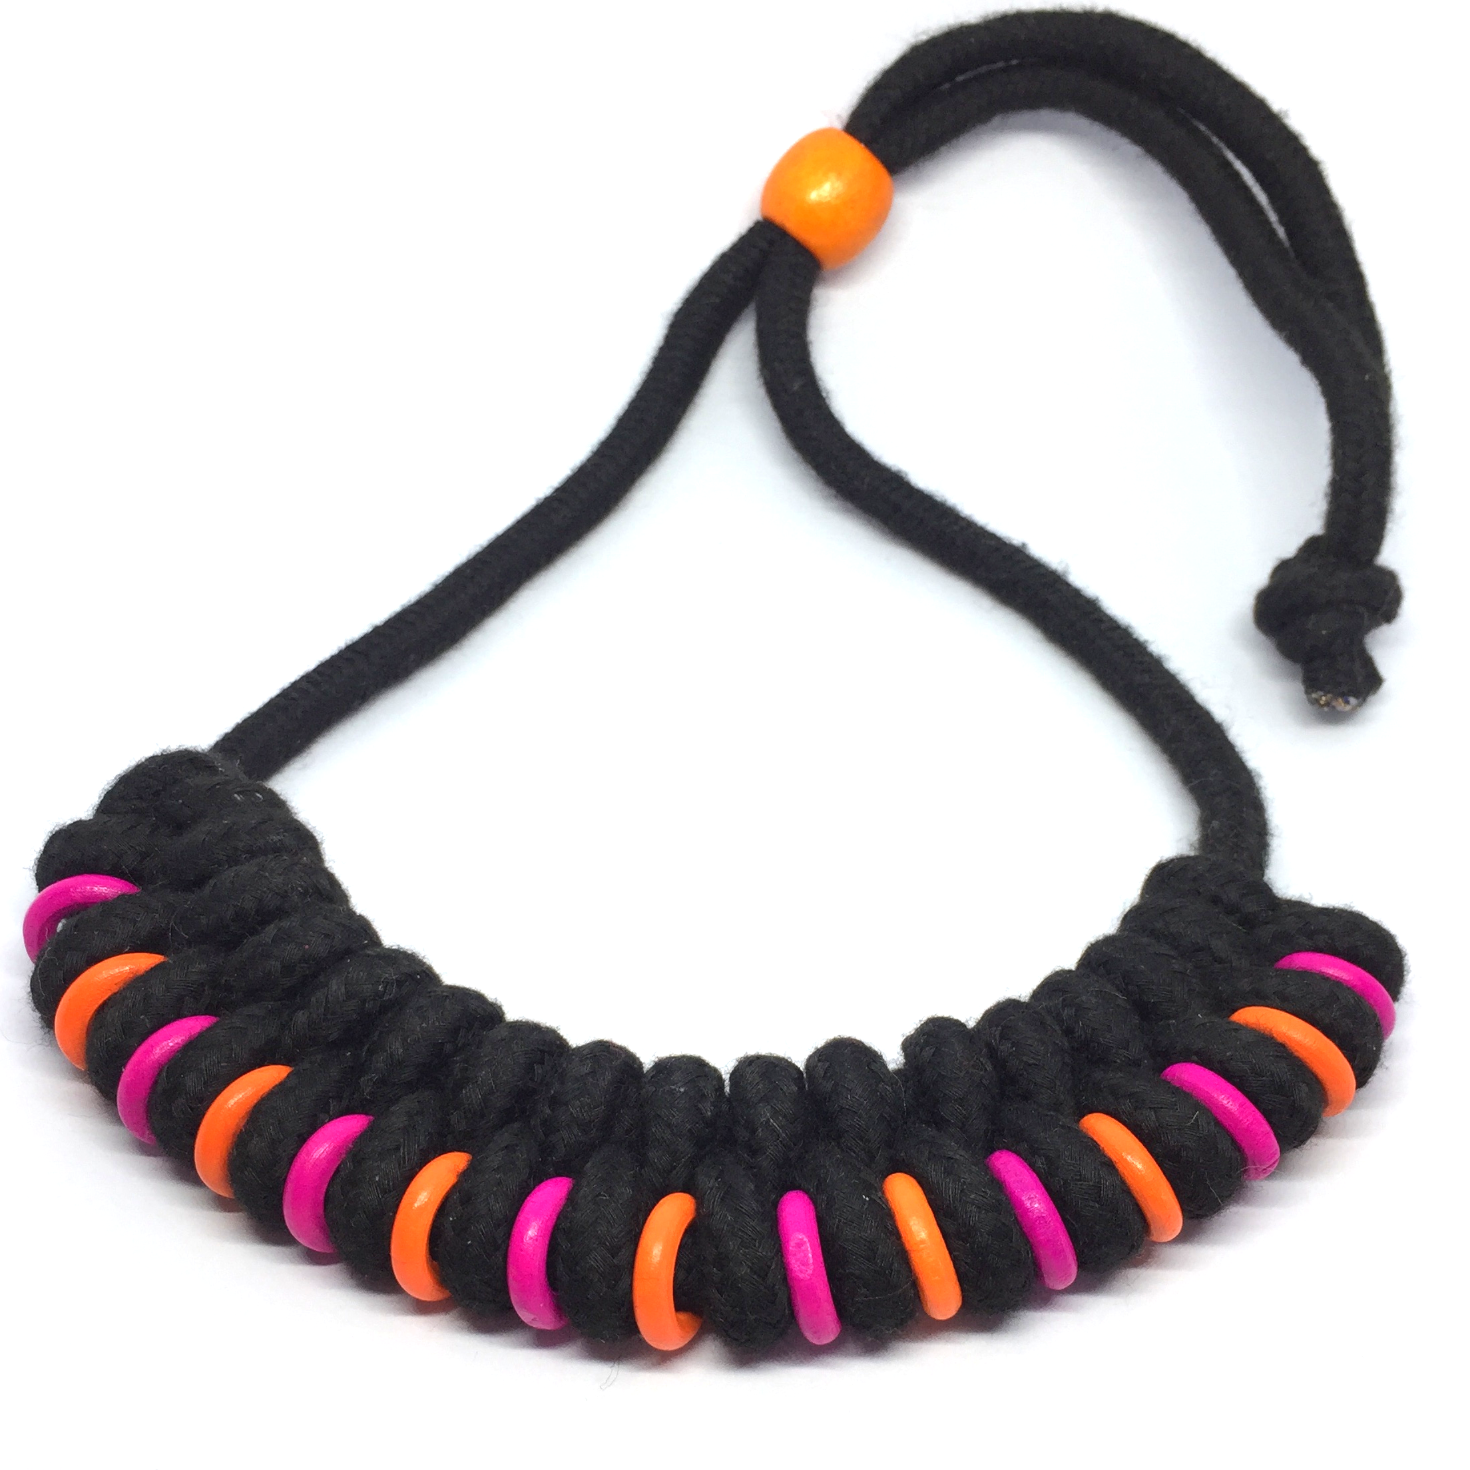 Black braided necklace with pink & orange beads